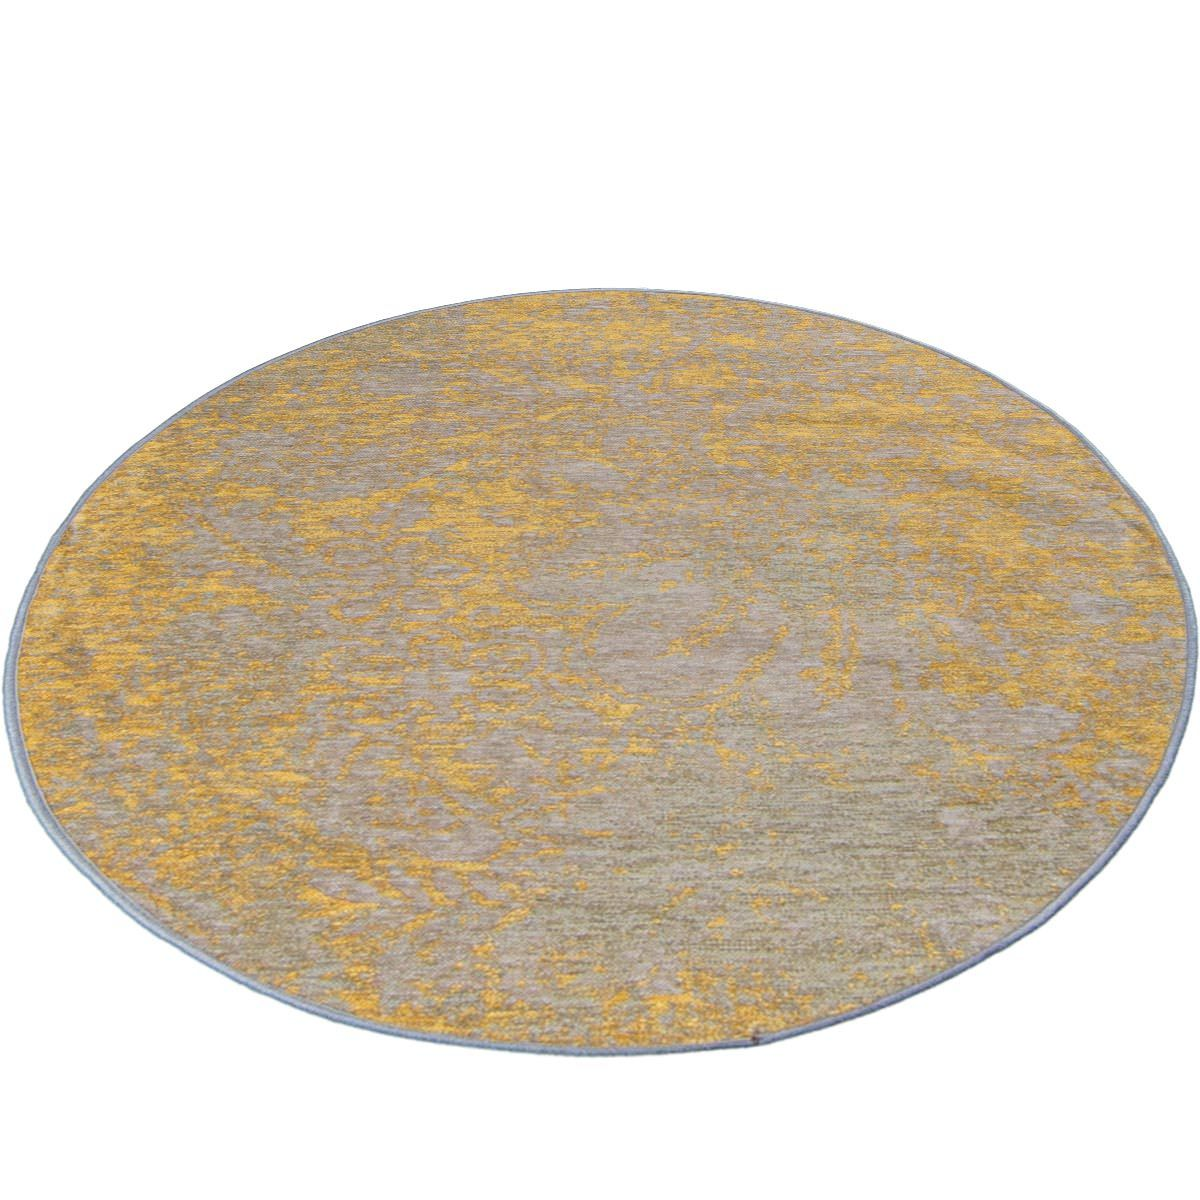 Marseille Rug 29 Yellow/Grey Round 2